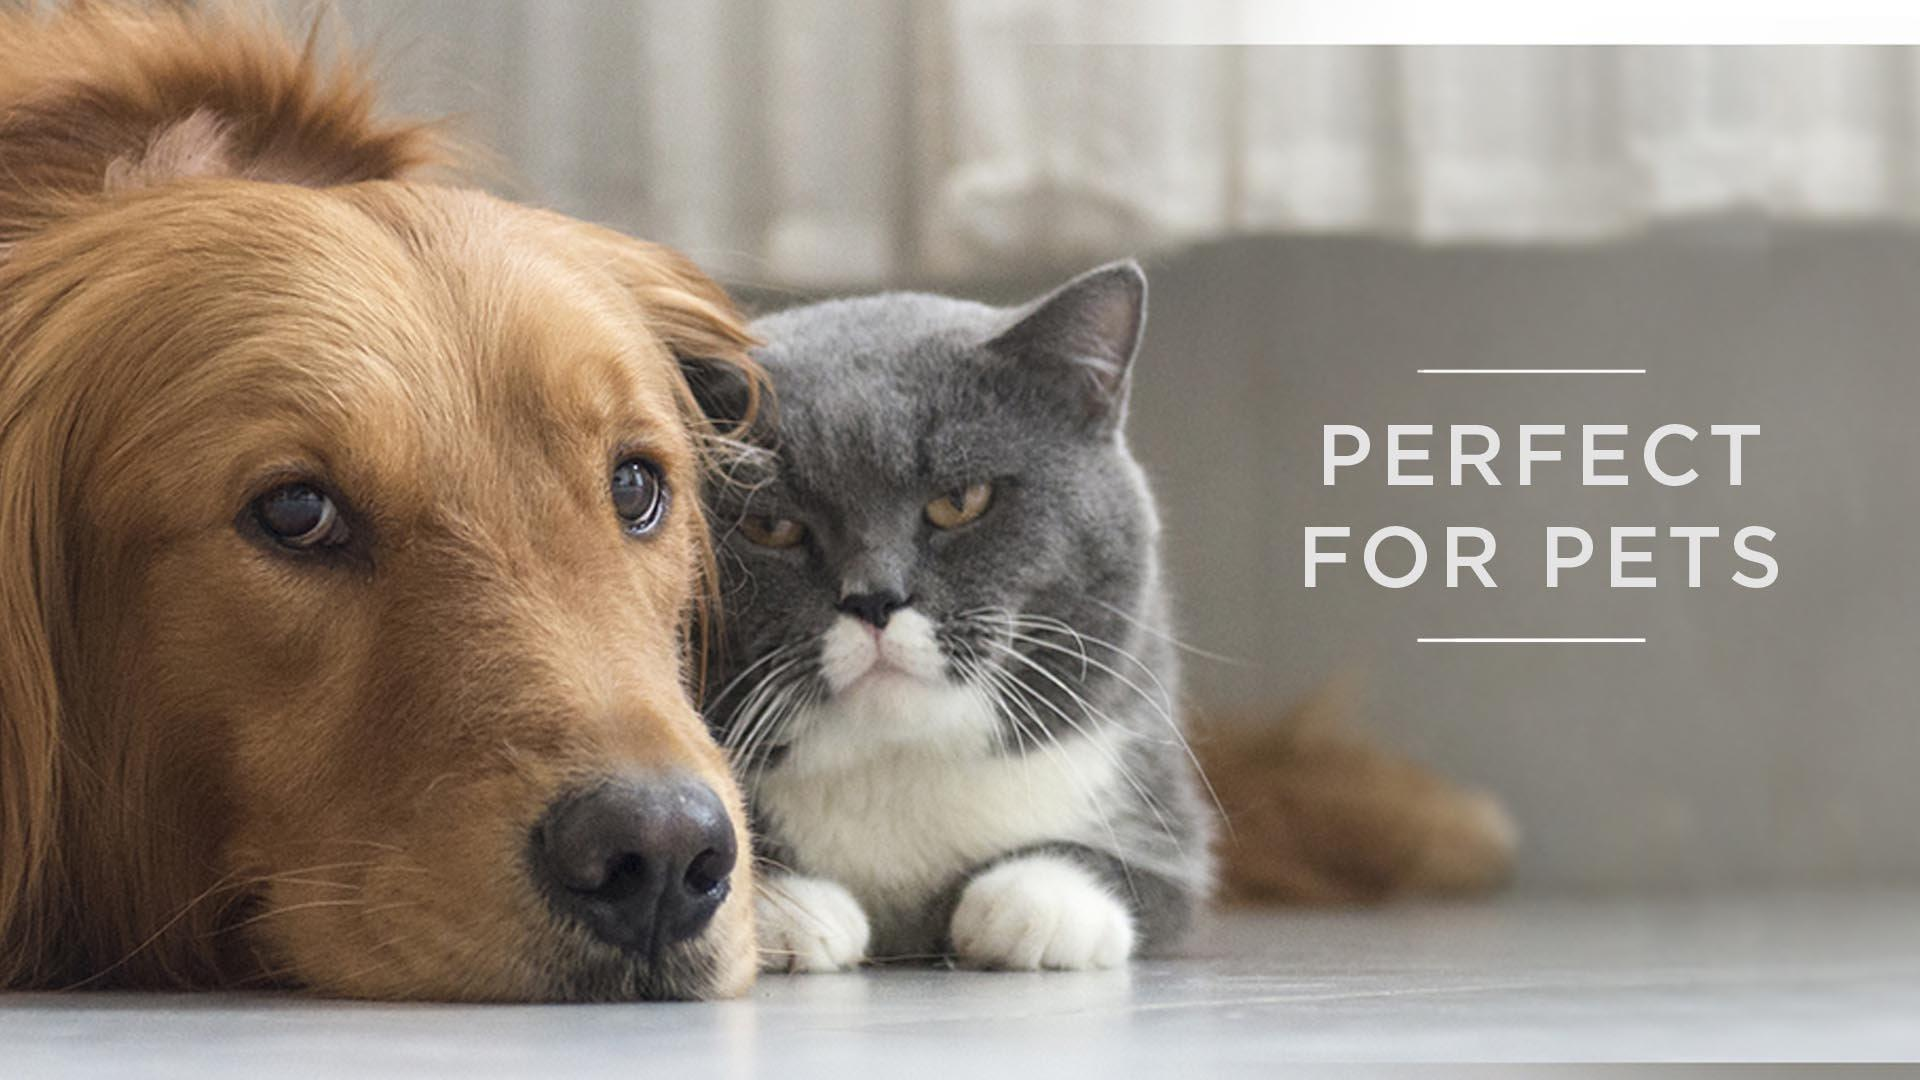 Perfect for Pets